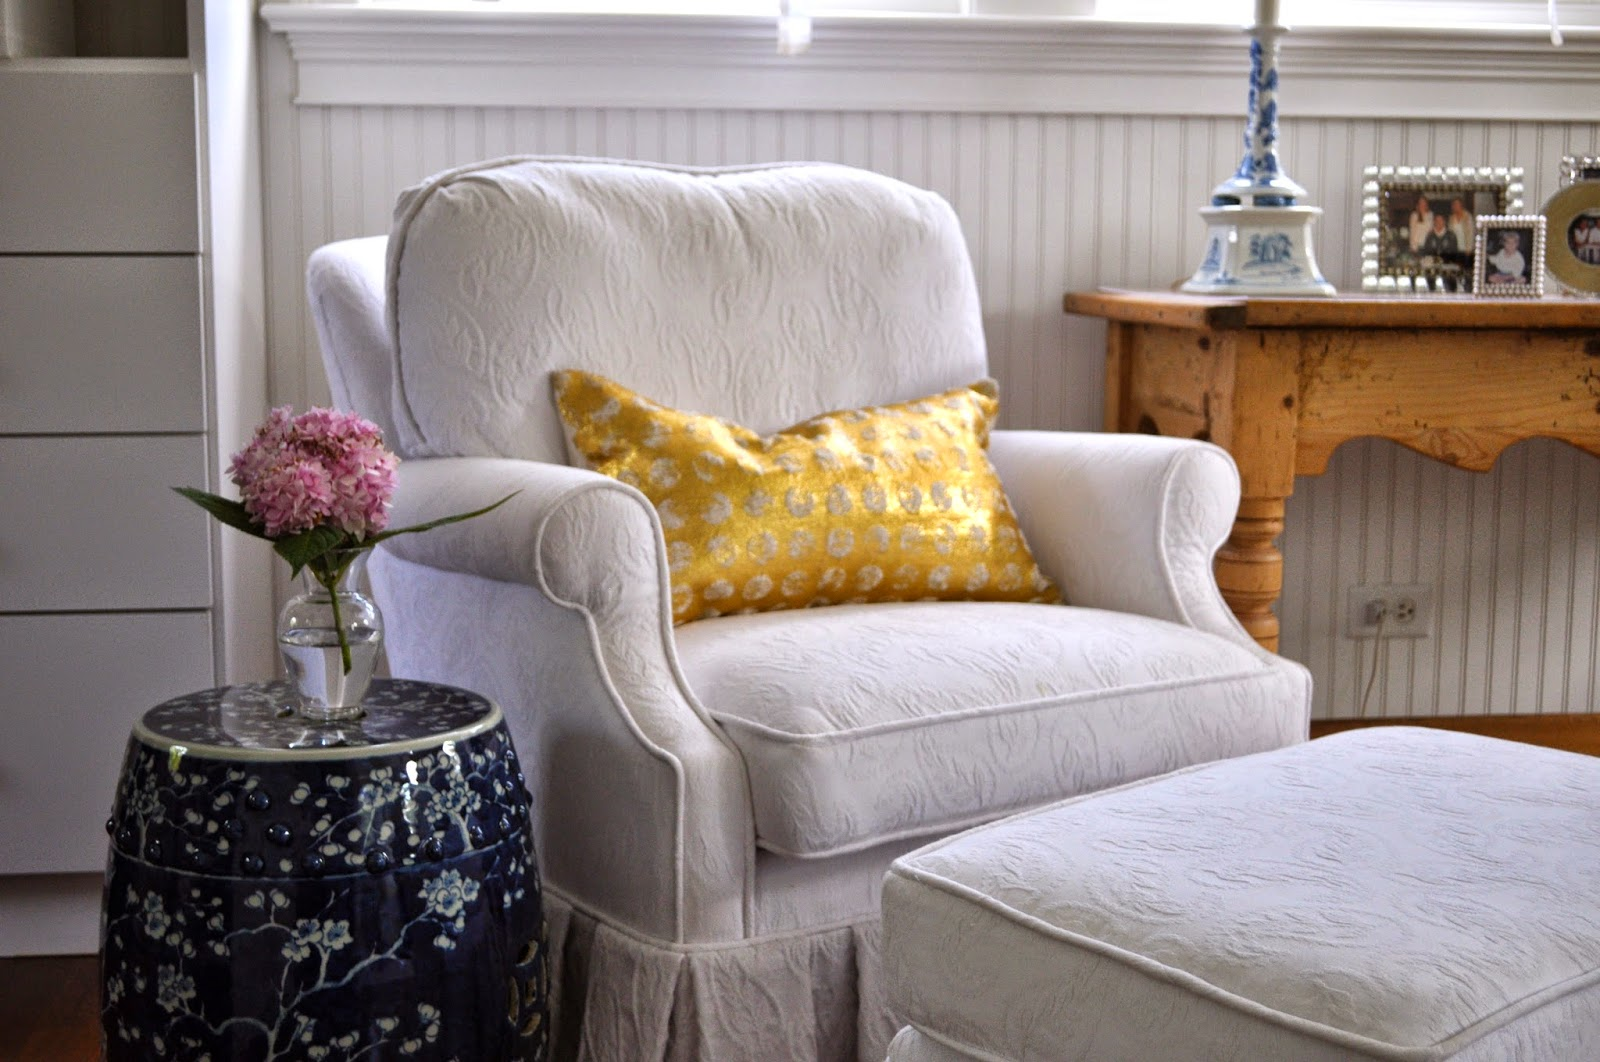 The Simplicity Of This Quatrine Reading Chair Provides The Perfect Backdrop  For A Bright, Fun Pillow Or Side Table. My Mom Loves Using Quatrine  Furniture ...